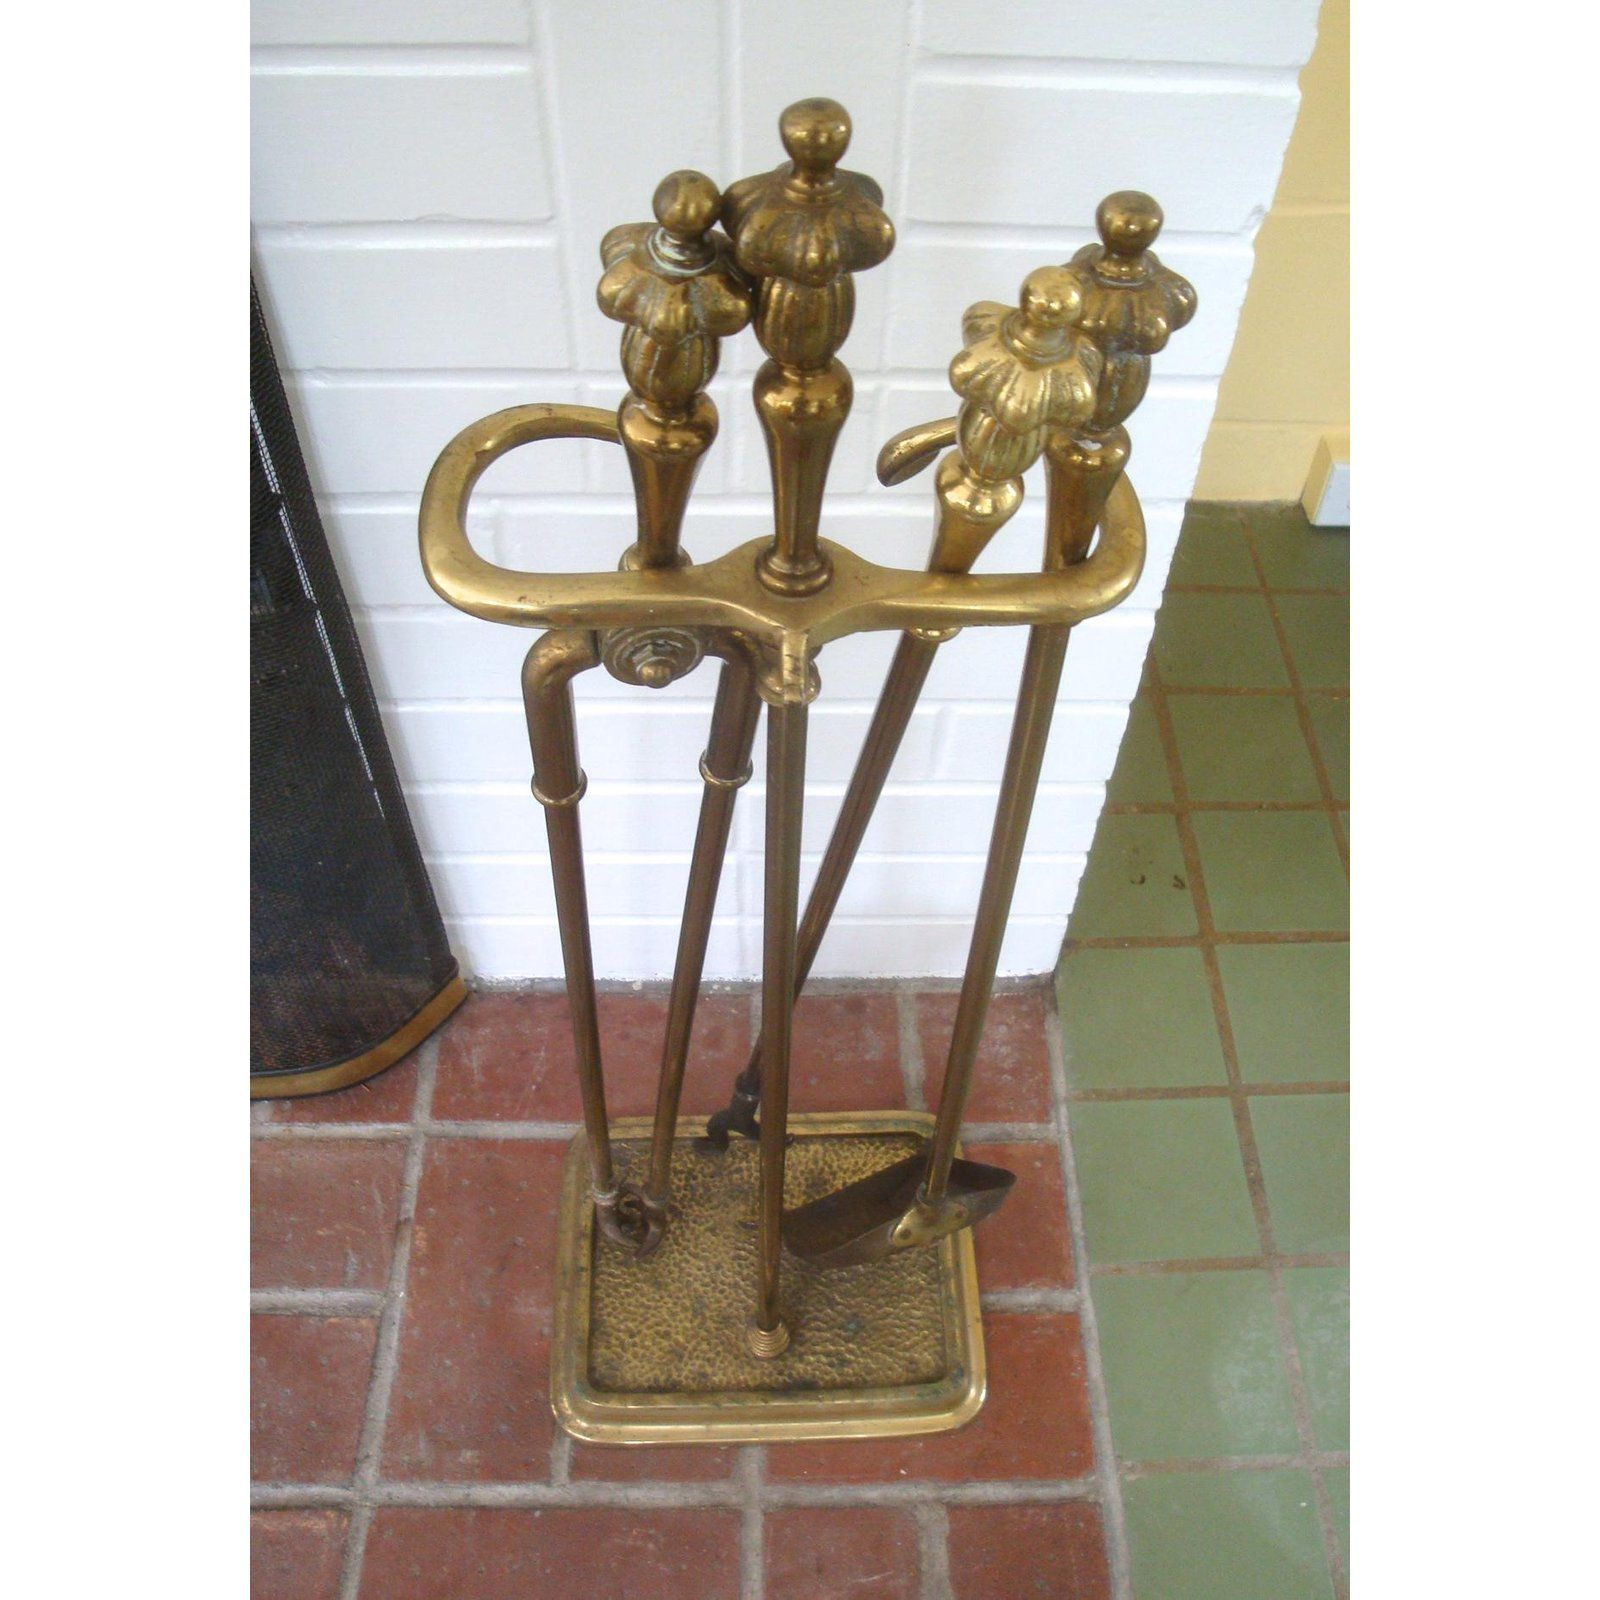 English Traditional Vintage French Style Fancy Brass Fireplace Tool Set For Sale Image 3 Of 5 Fireplace Tools Fireplace Tool Set Tool Set